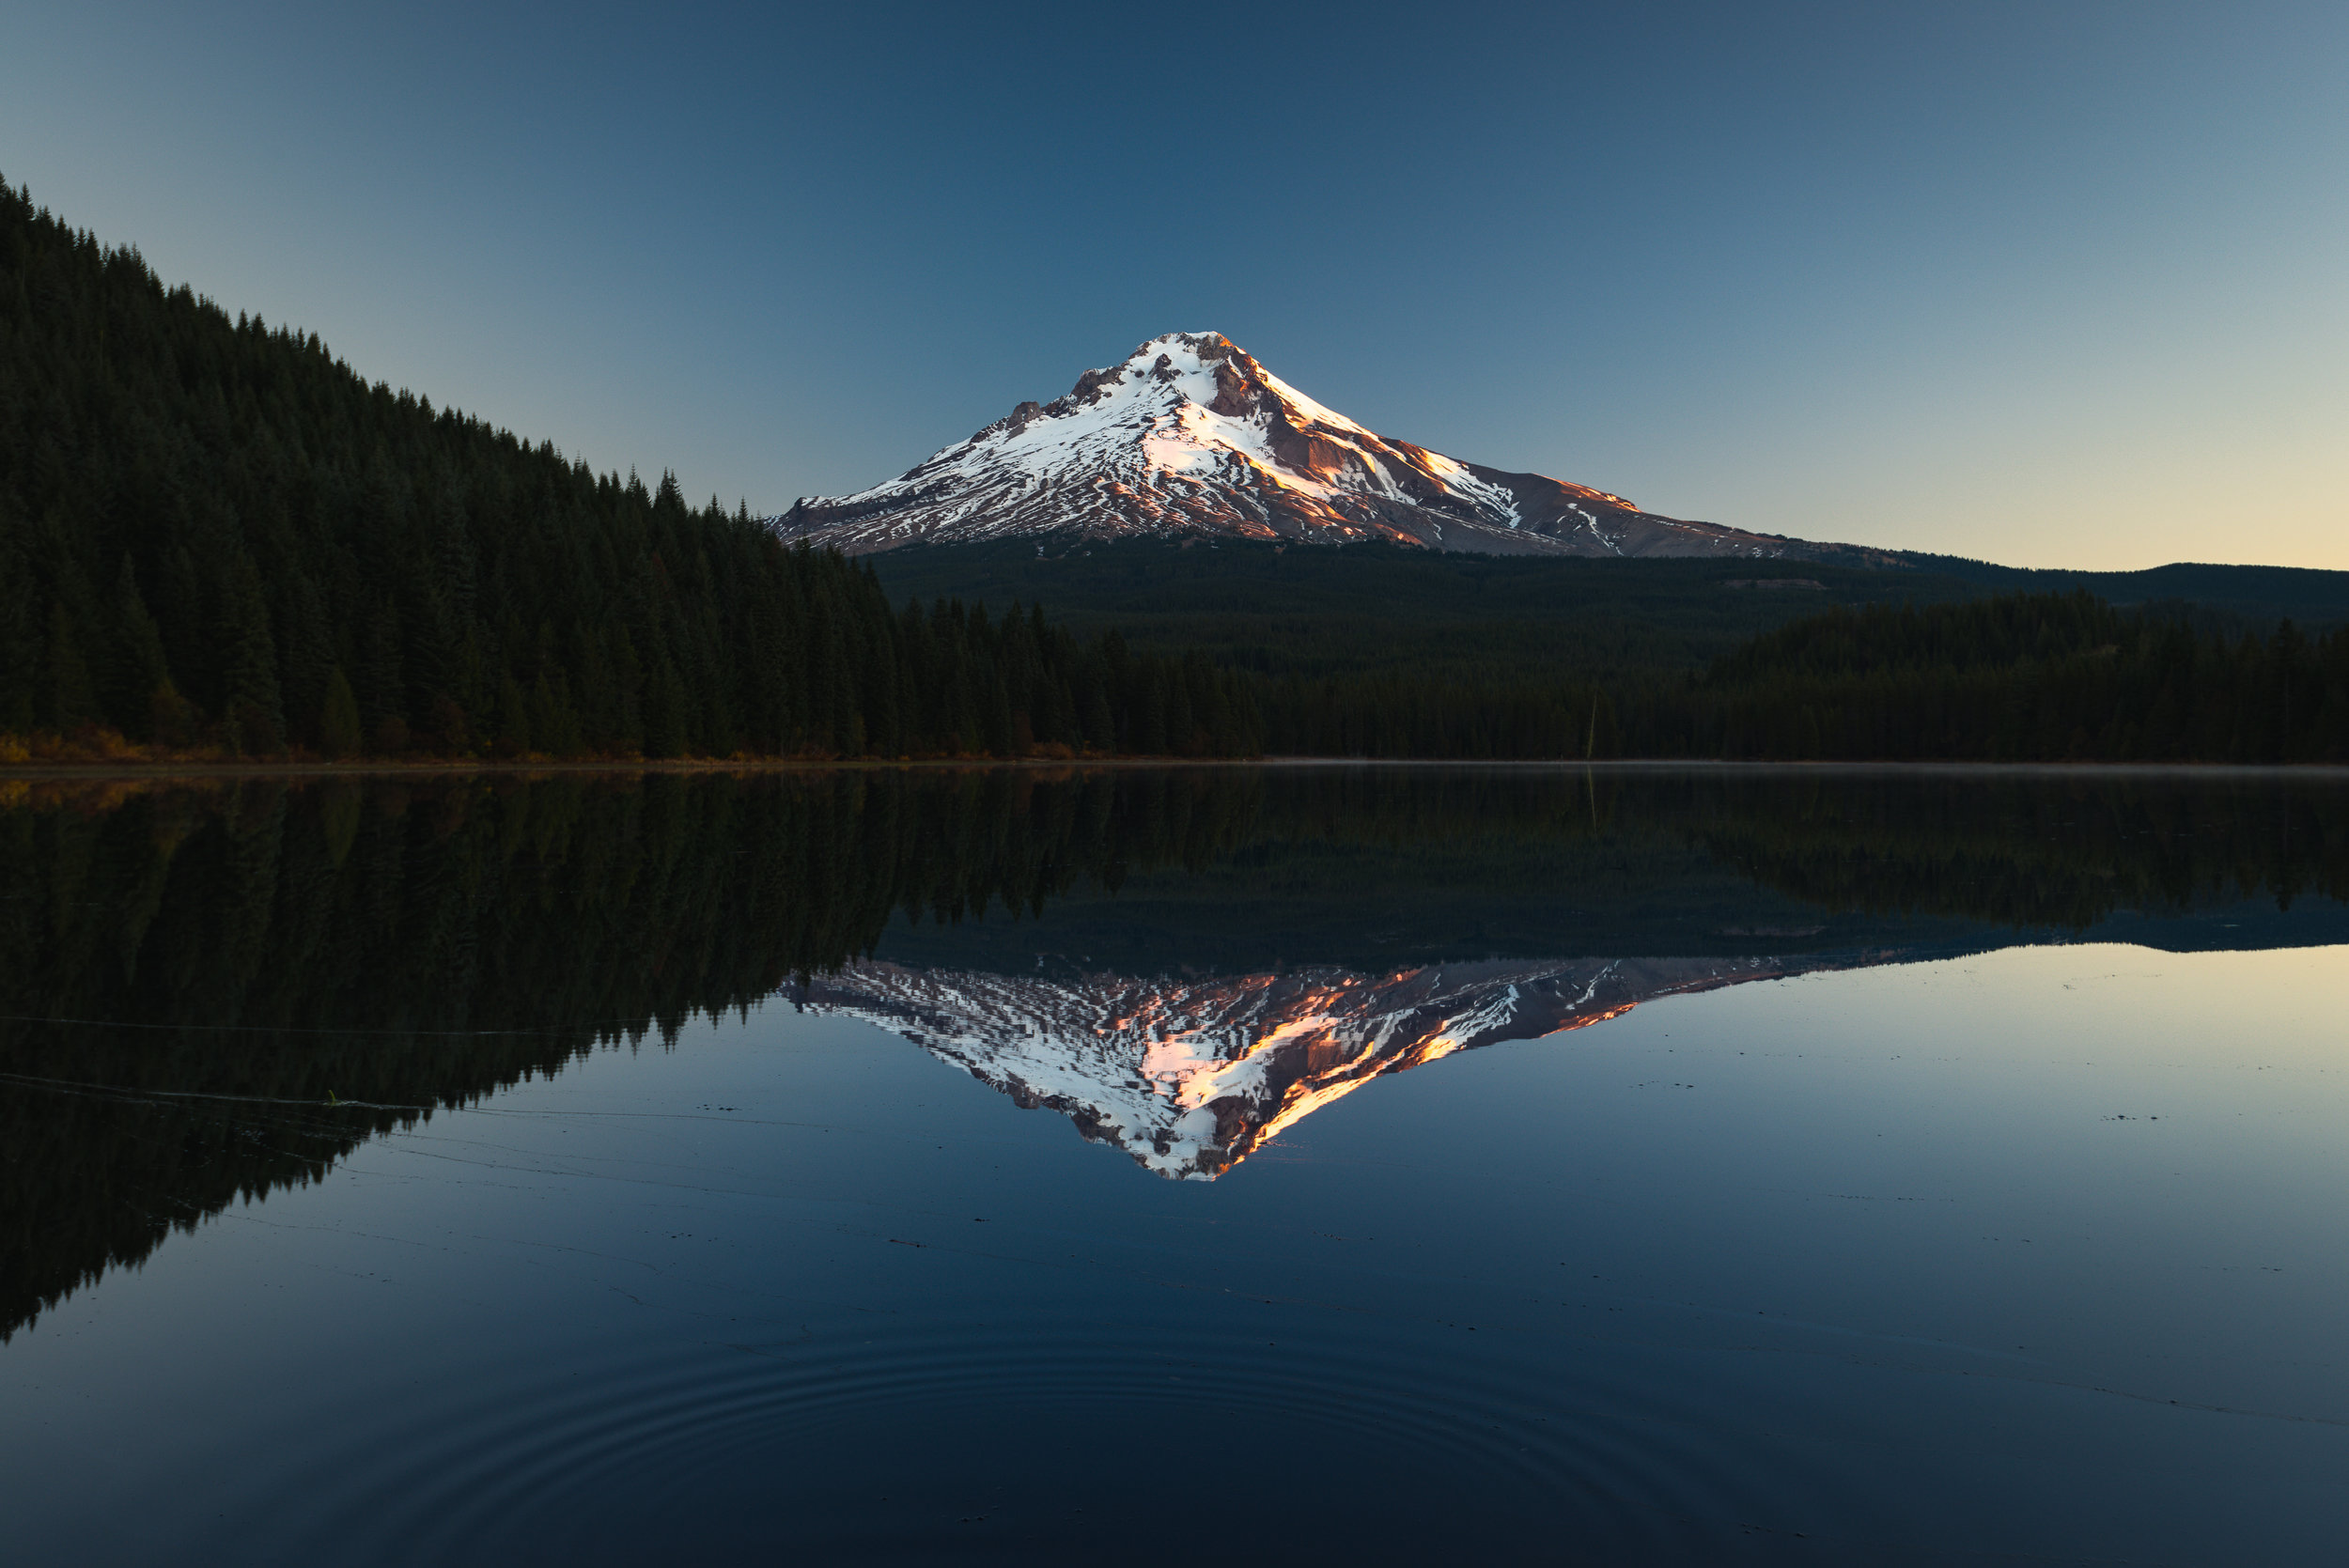 Trillium Lake is an infamous location many photographers have shot while 'Trophy Hunting' including myself.